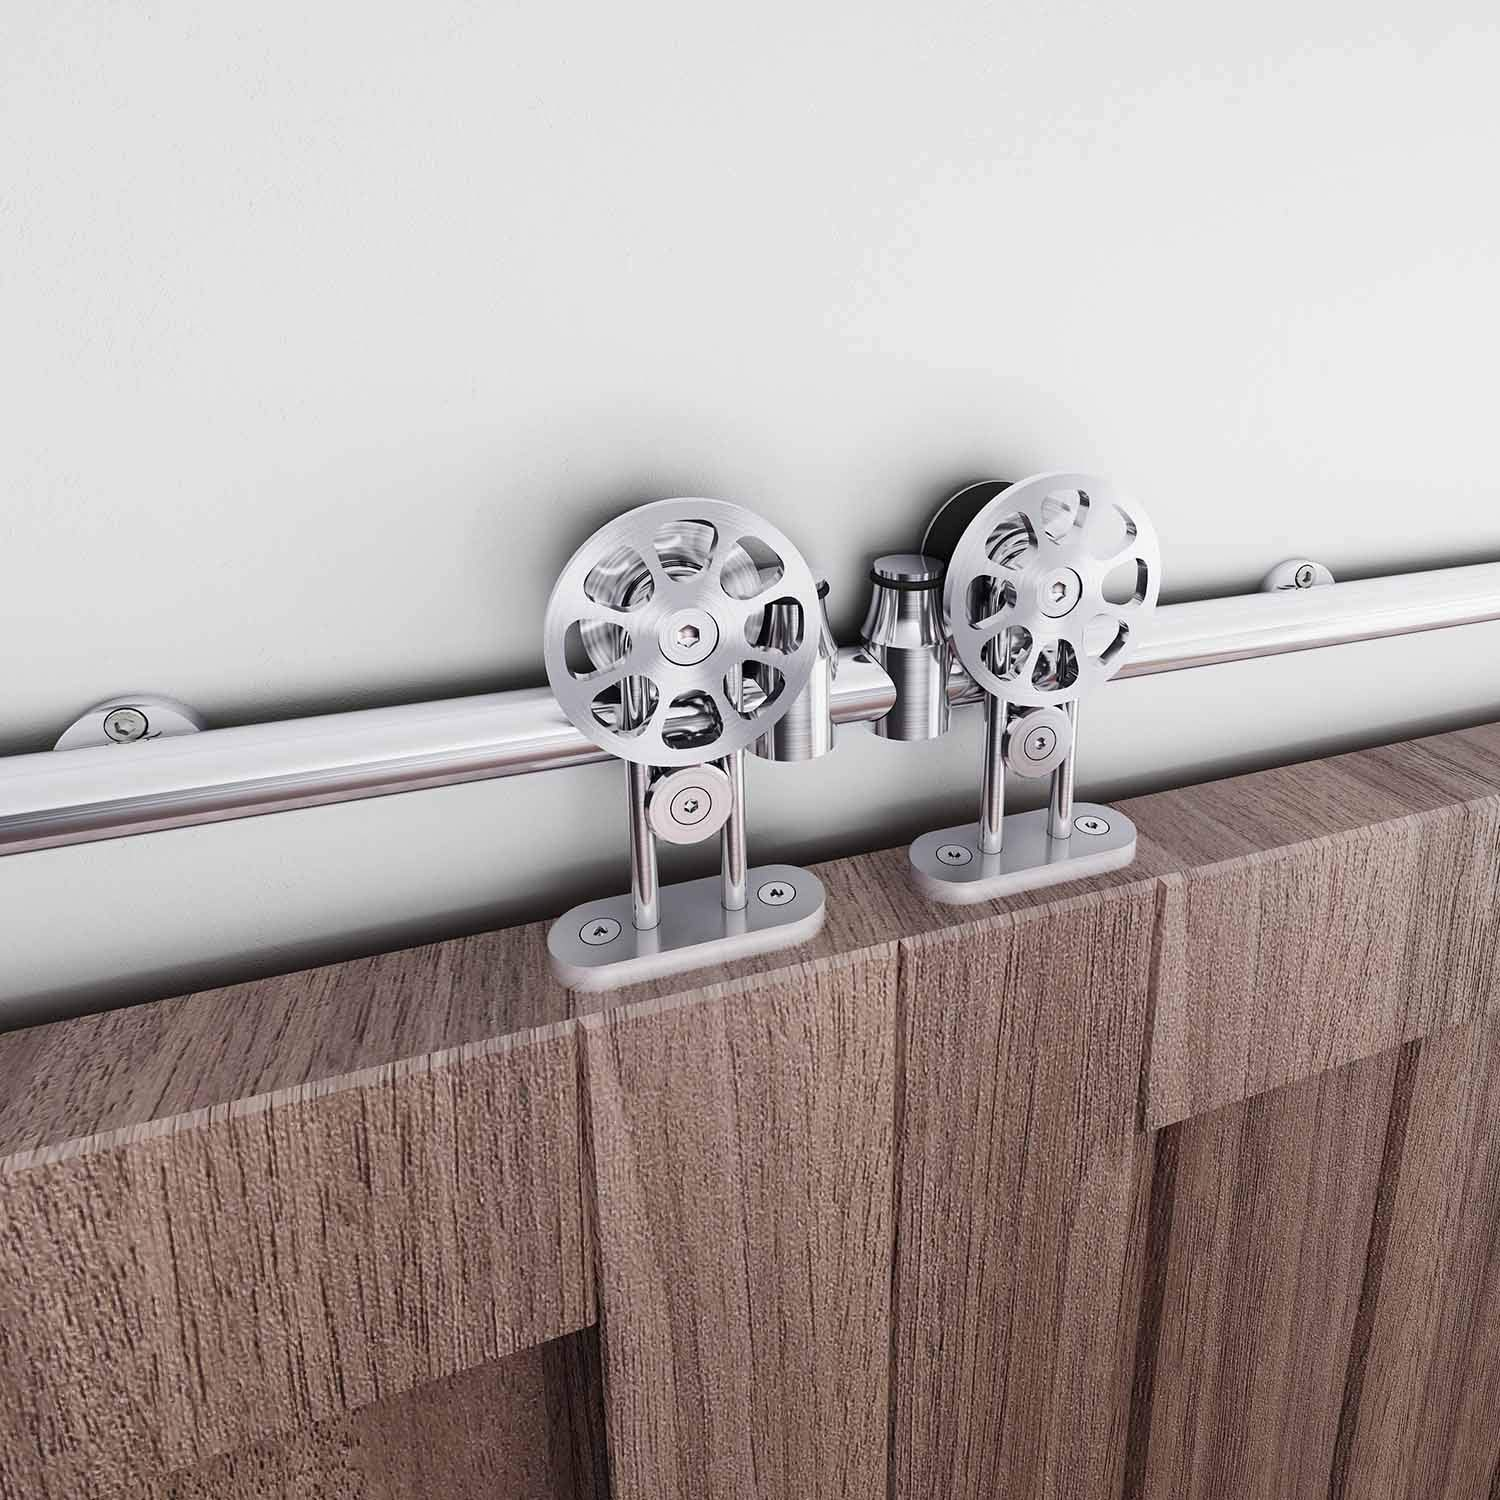 EaseLife 12 FT Double Door Top Mount Modern Sliding Door Hardware Track Kit | Stainless Steel | Anti-Rust| Slide Smooth Quiet | Easy Install | Fit Two 30''~36'' Wide Door | 12FT Track Double Door Kit by EaseLife (Image #3)